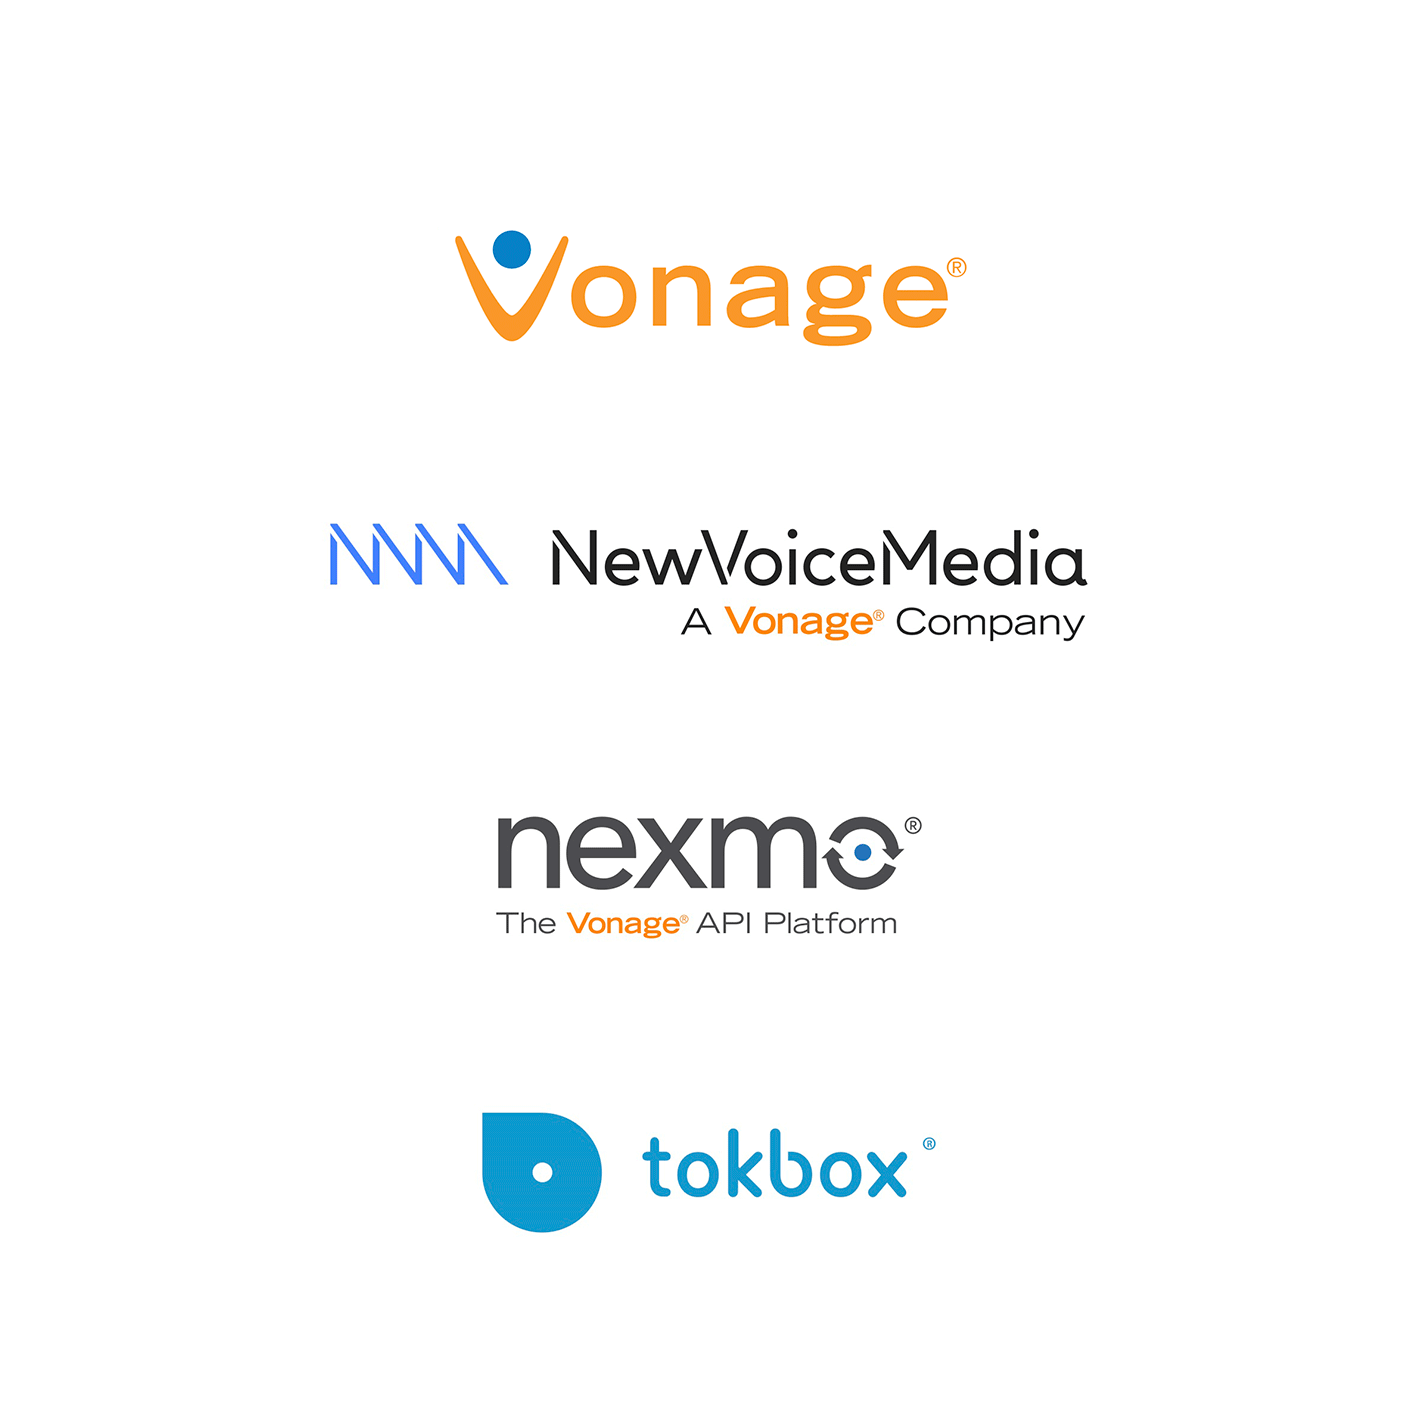 Old logos for Vonage, NewVoiceMedia, Nexmo and tokbox.